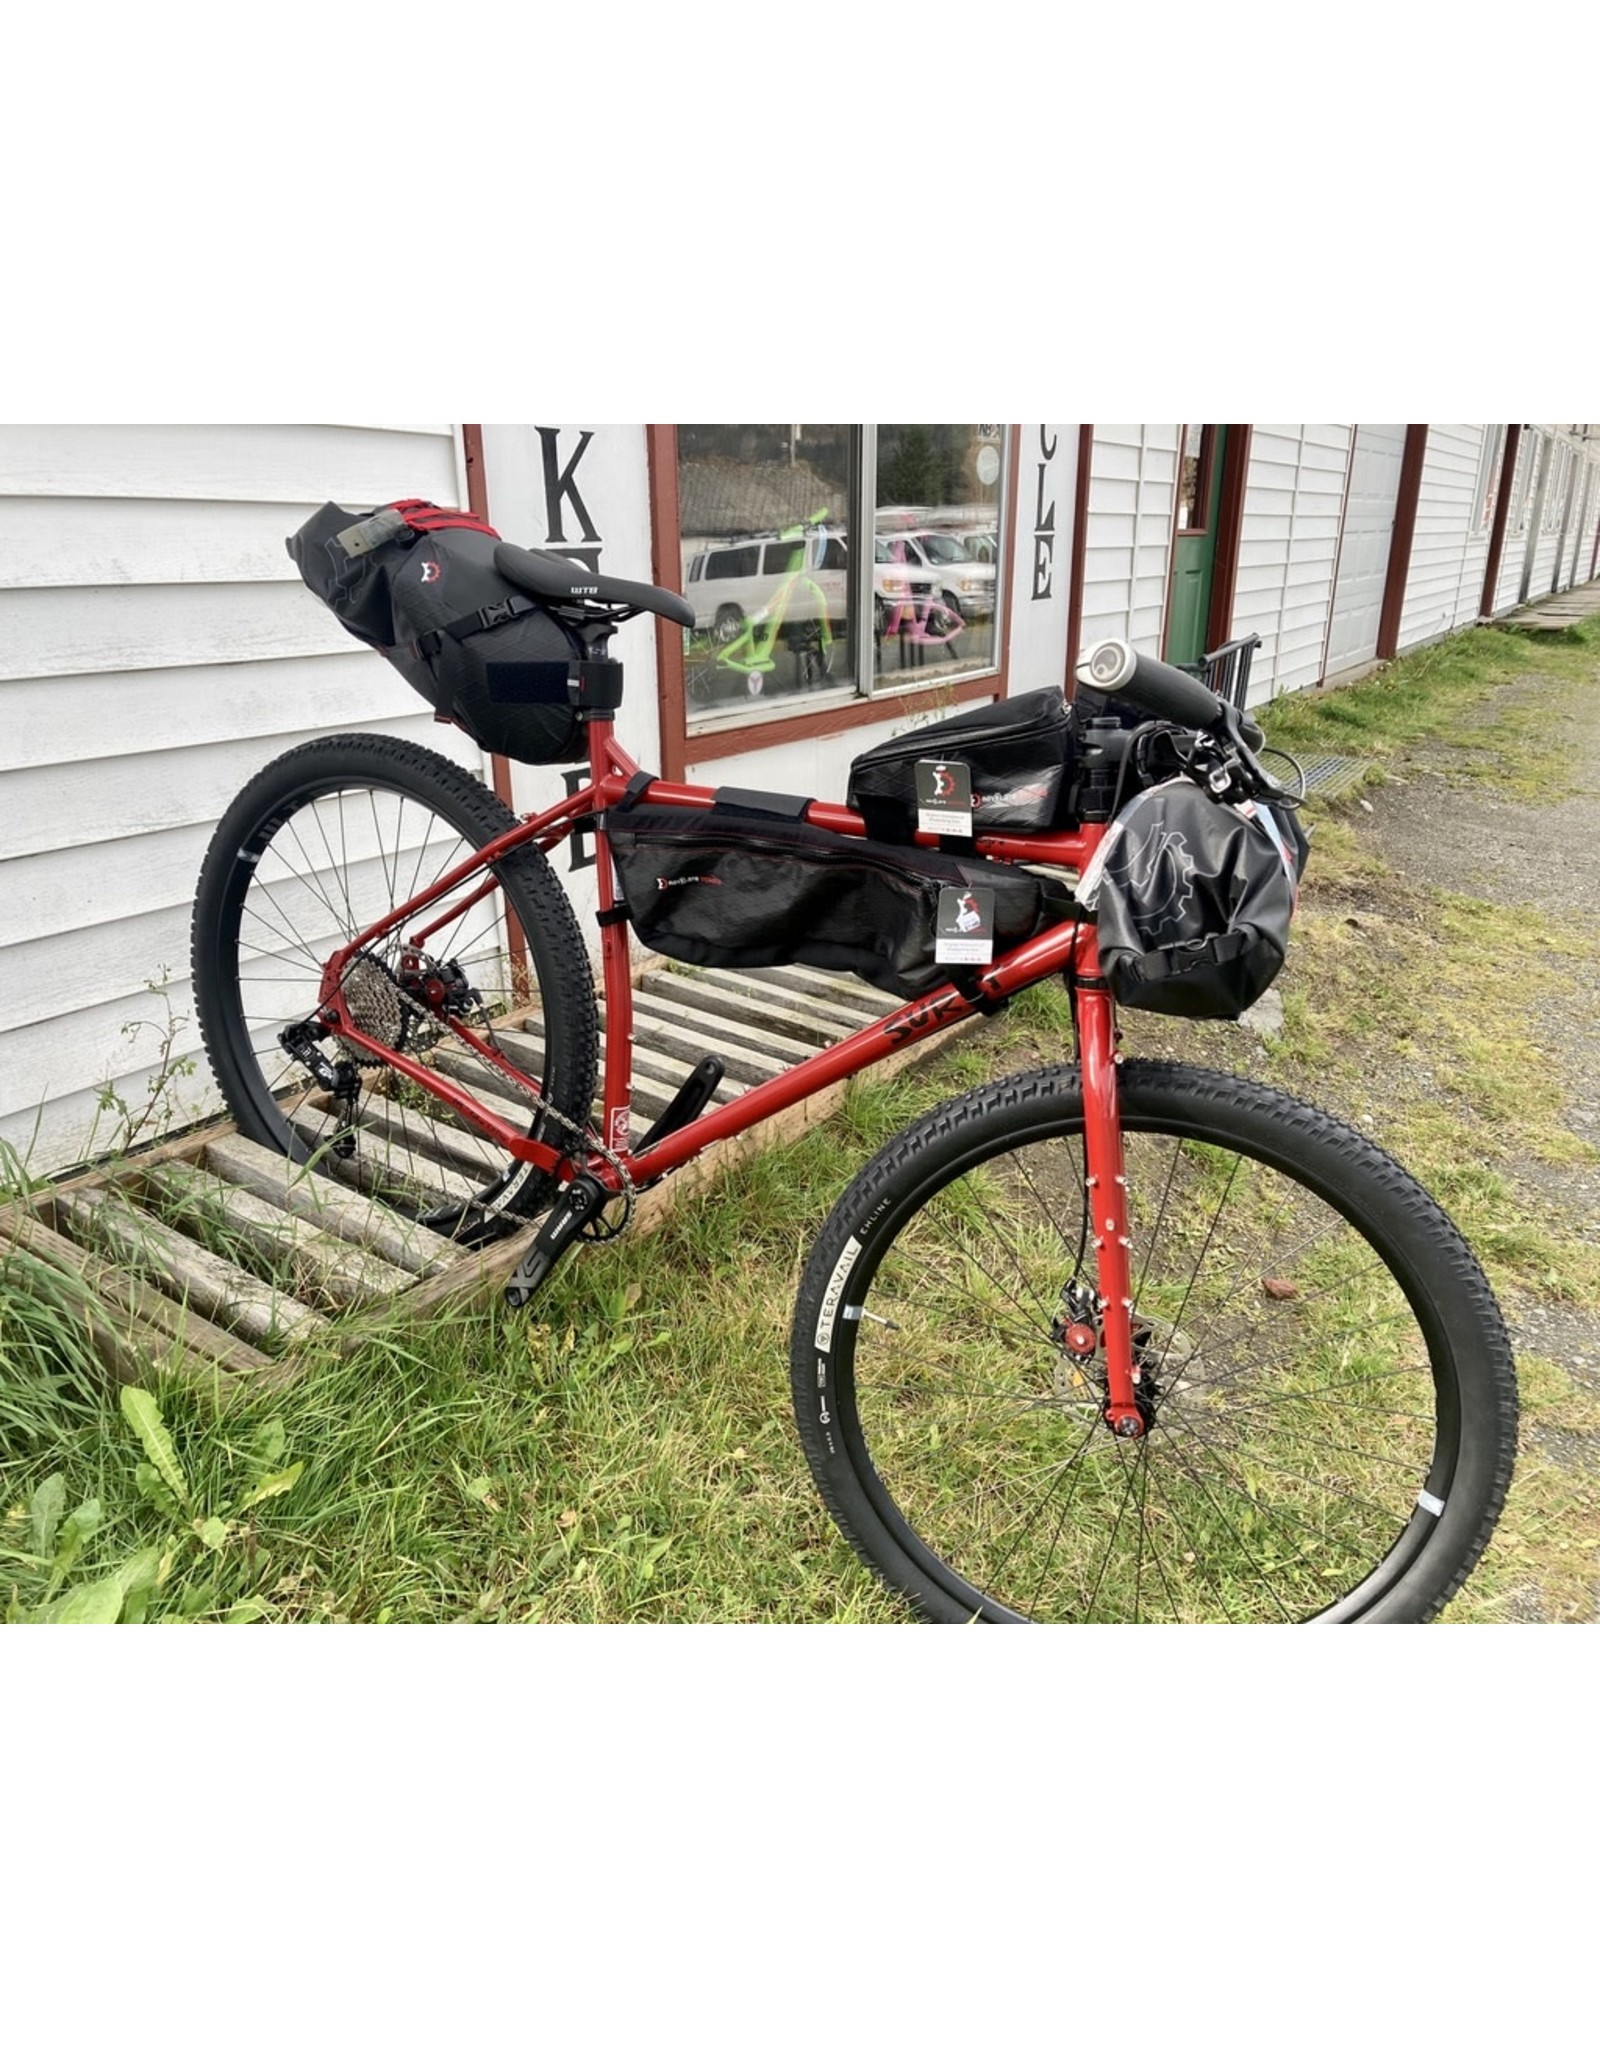 Surly Surly Ogre Complete - Brick Red - XL